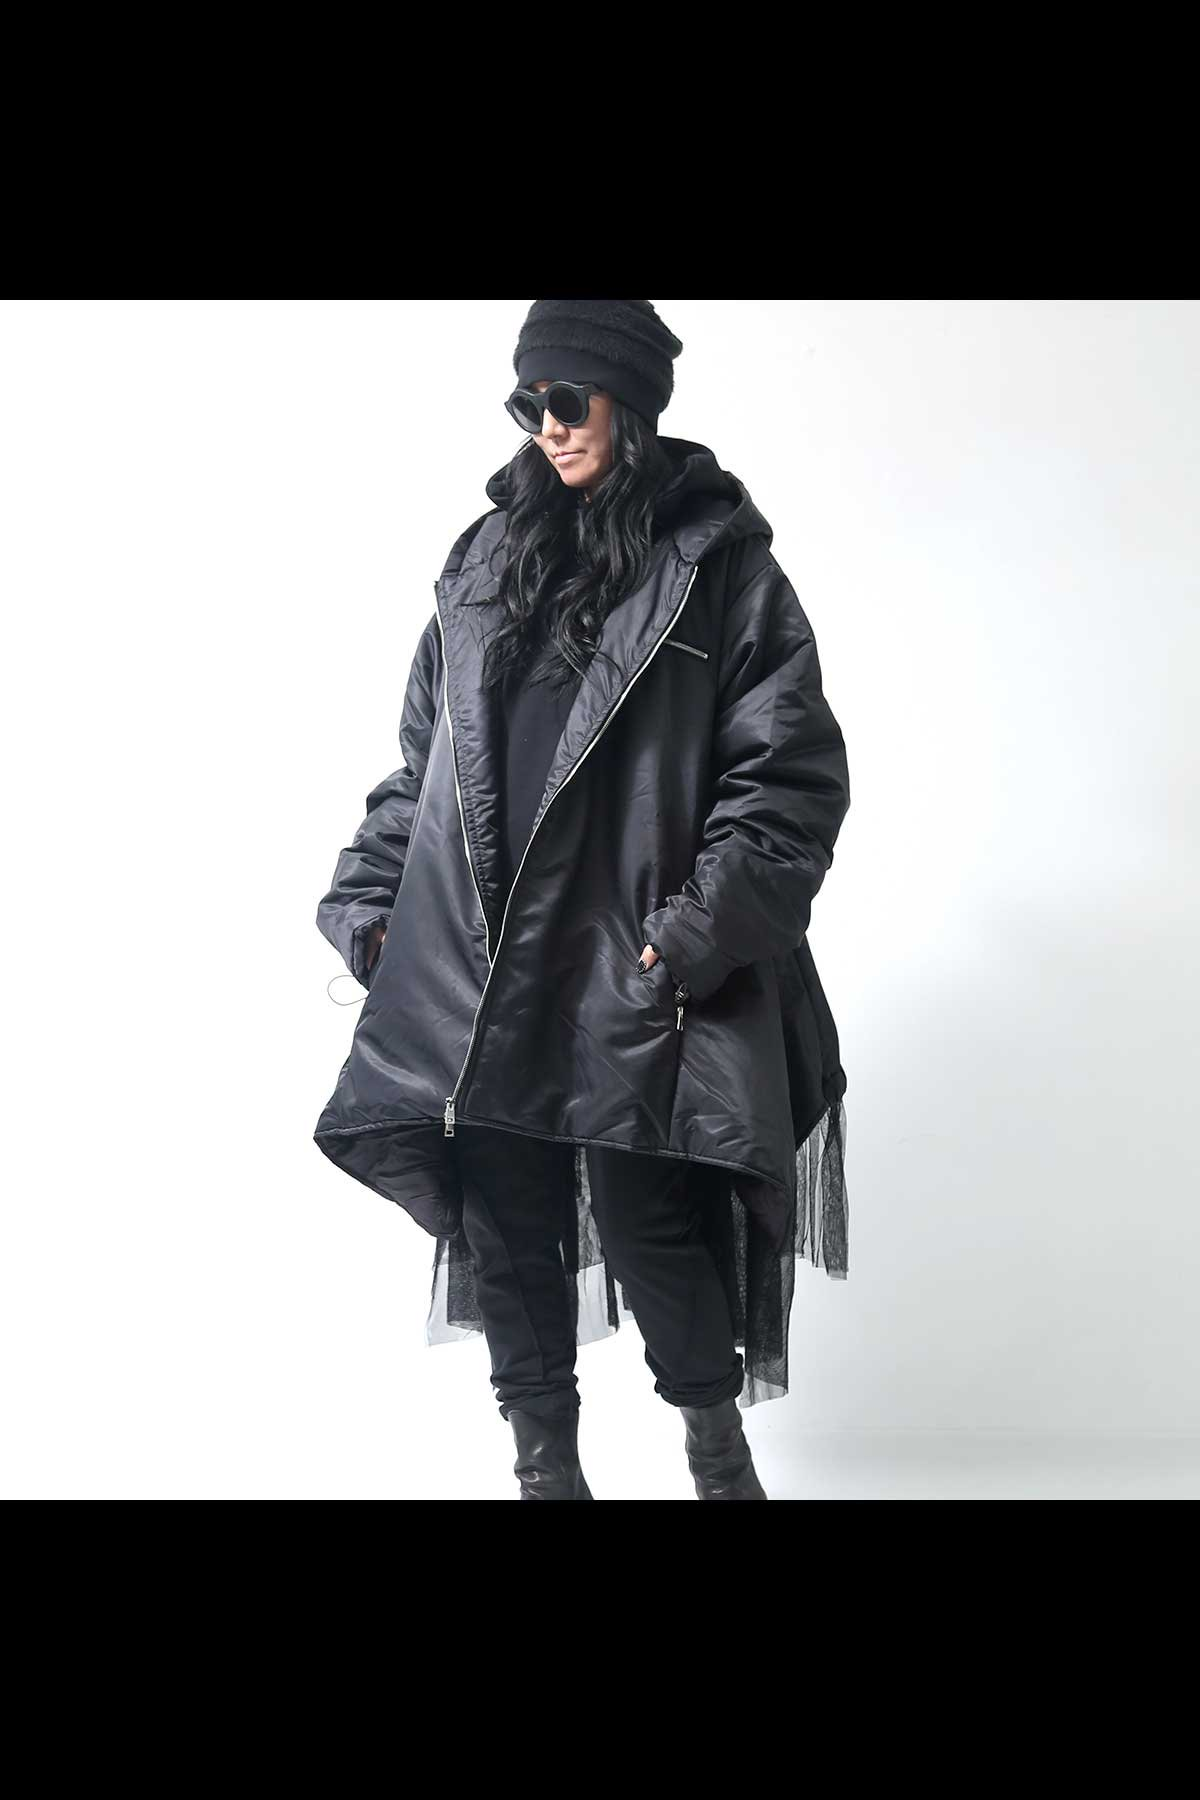 <img class='new_mark_img1' src='https://img.shop-pro.jp/img/new/icons56.gif' style='border:none;display:inline;margin:0px;padding:0px;width:auto;' />NYLON PUFFER JACKET+TULLE BOST-03_BLACK